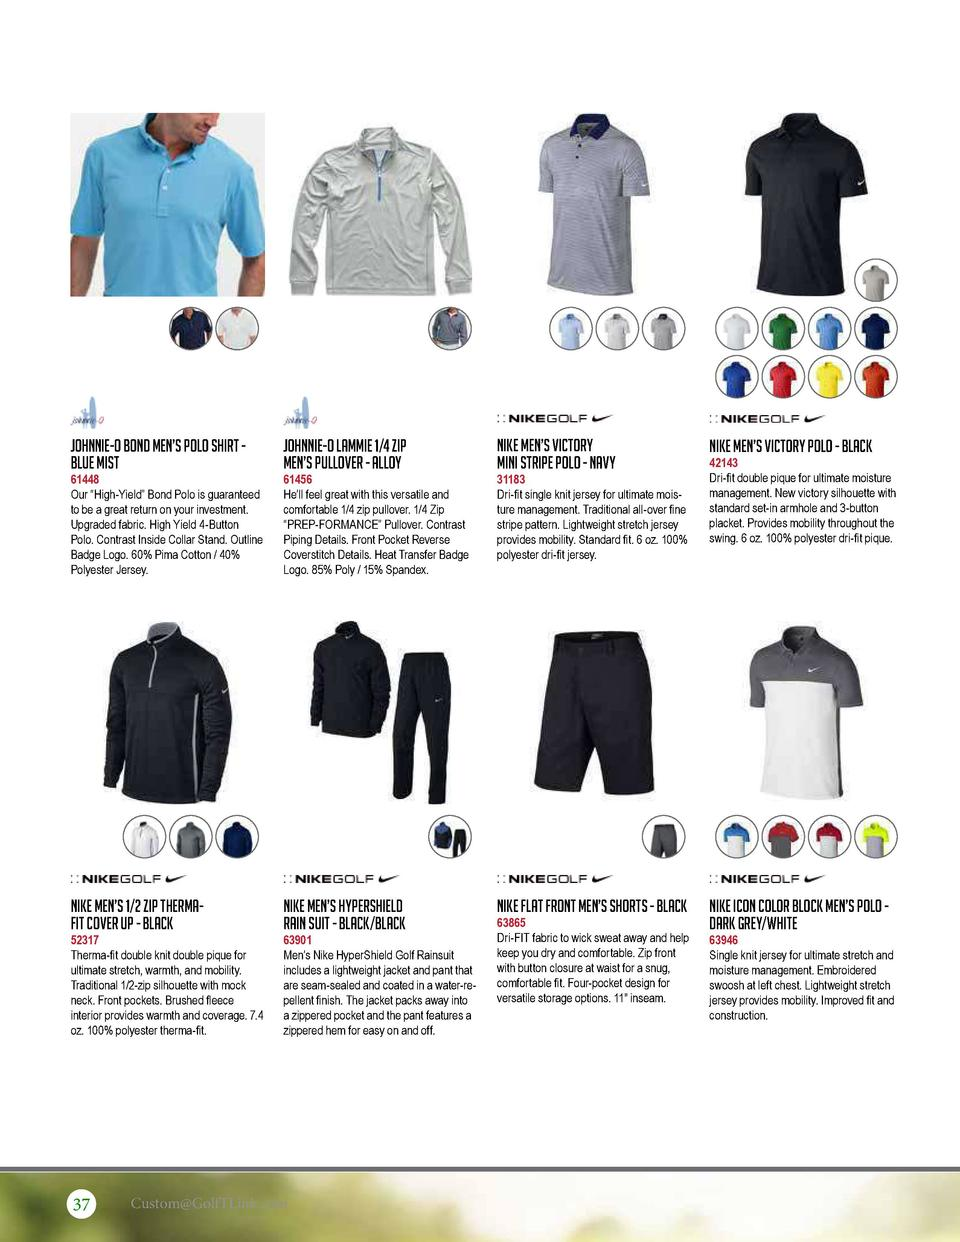 Johnnie-O Bond Men   s Polo Shirt Blue Mist  Johnnie-O Lammie 1 4 Zip Men   s Pullover - Alloy  Nike Men   s Victory Mini ...